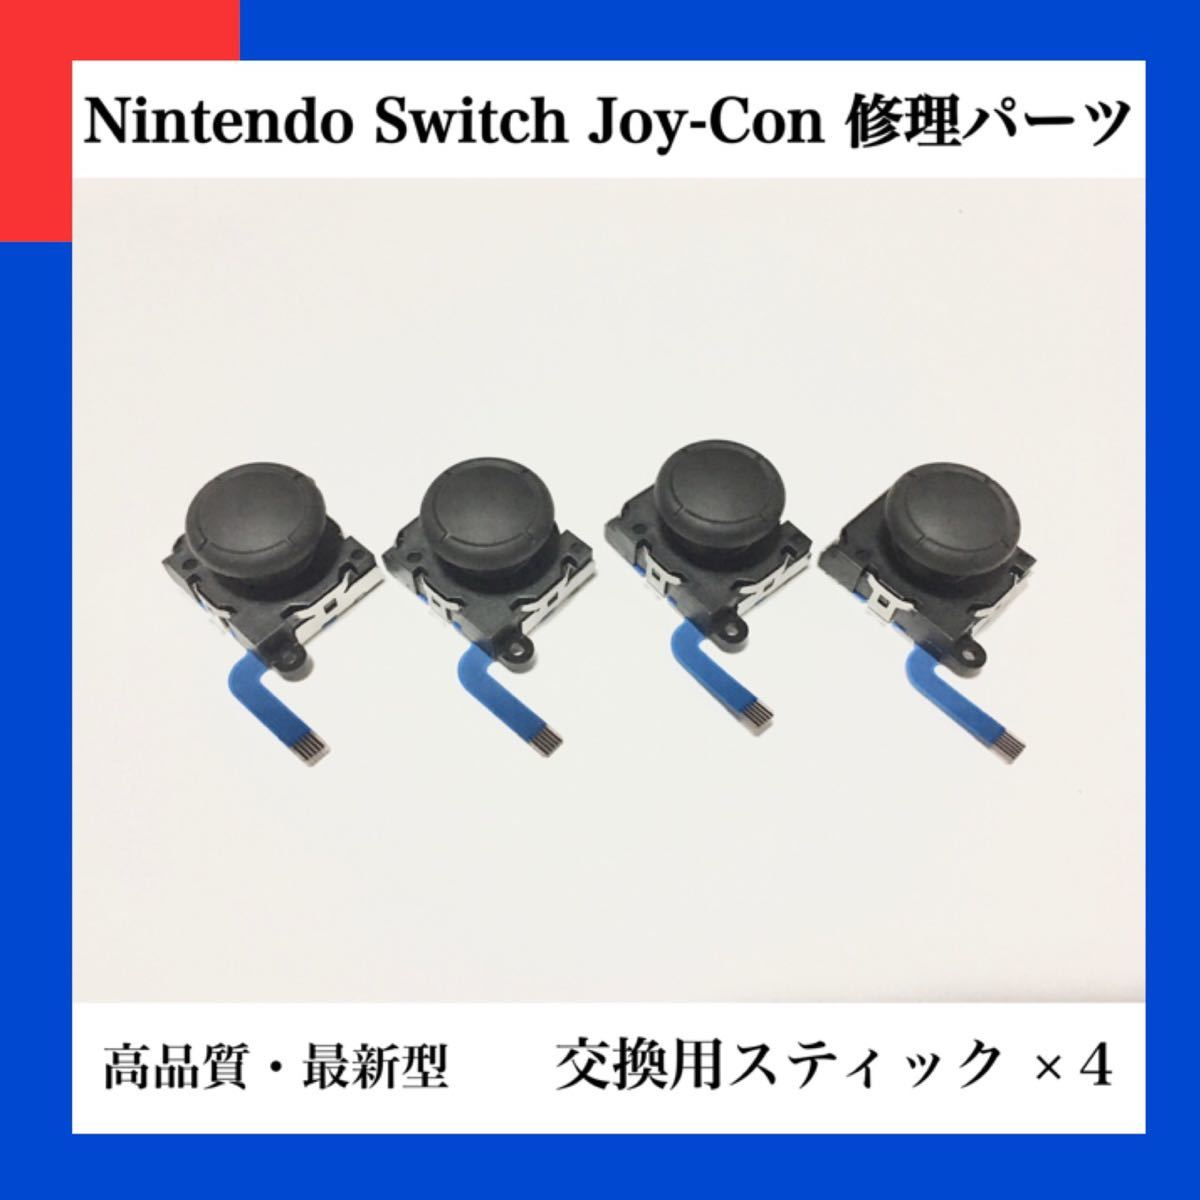 Nintendo Switch Joy-Con 修理パーツ 4個入り